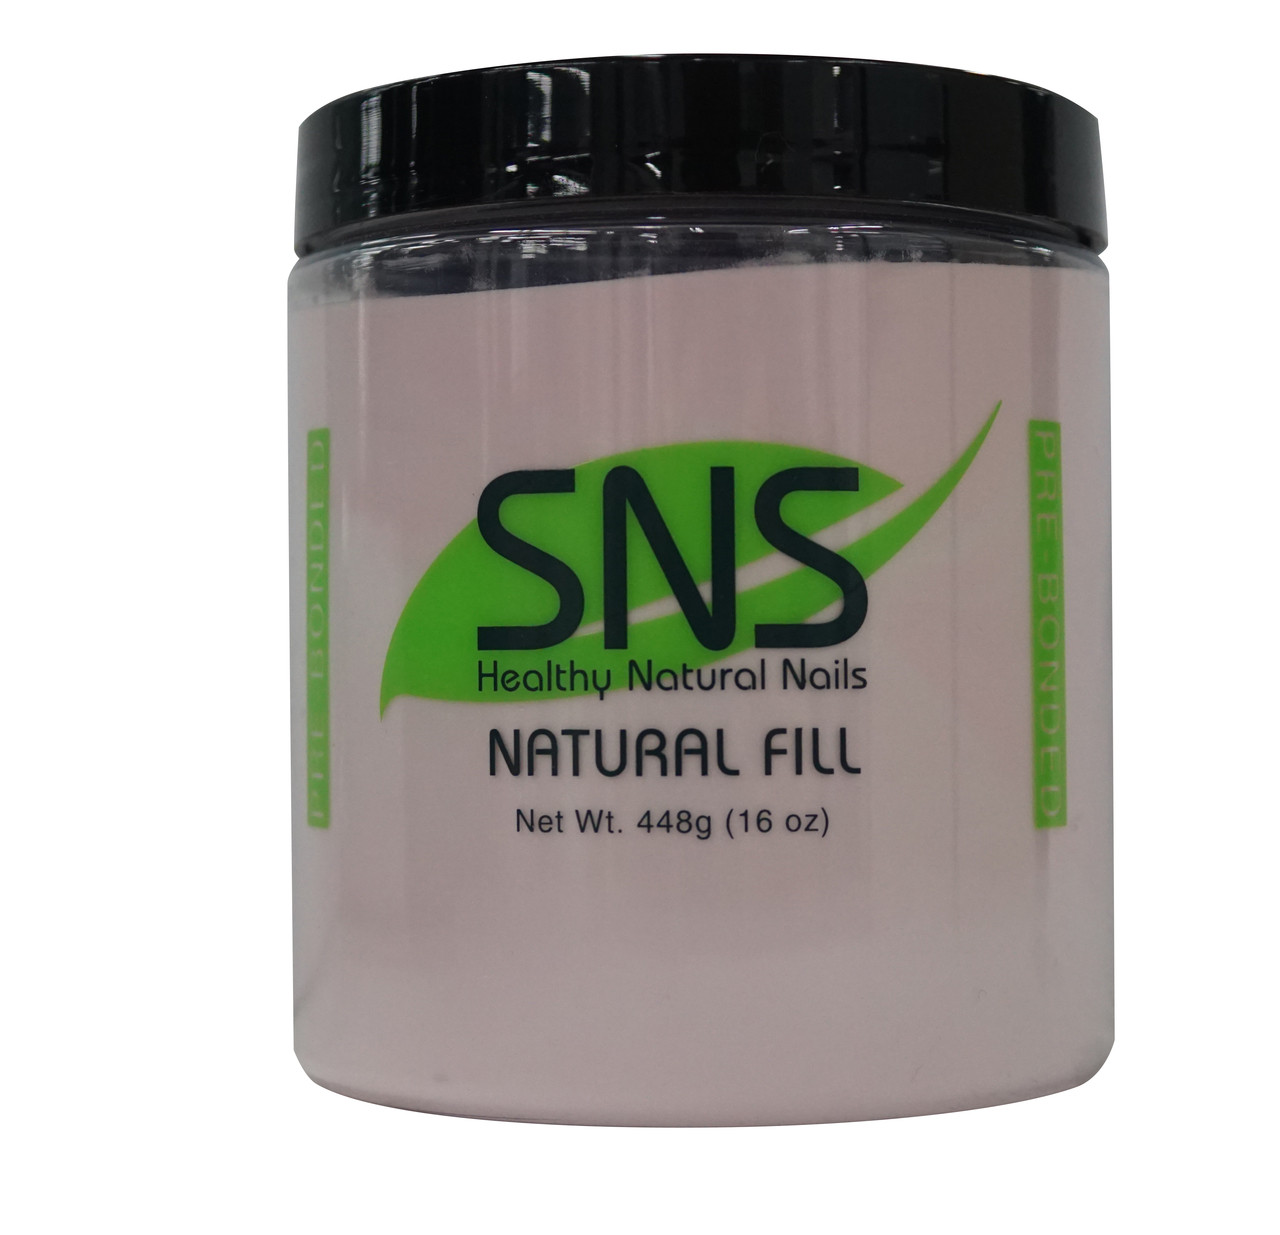 SNS - Signature Nail Systems